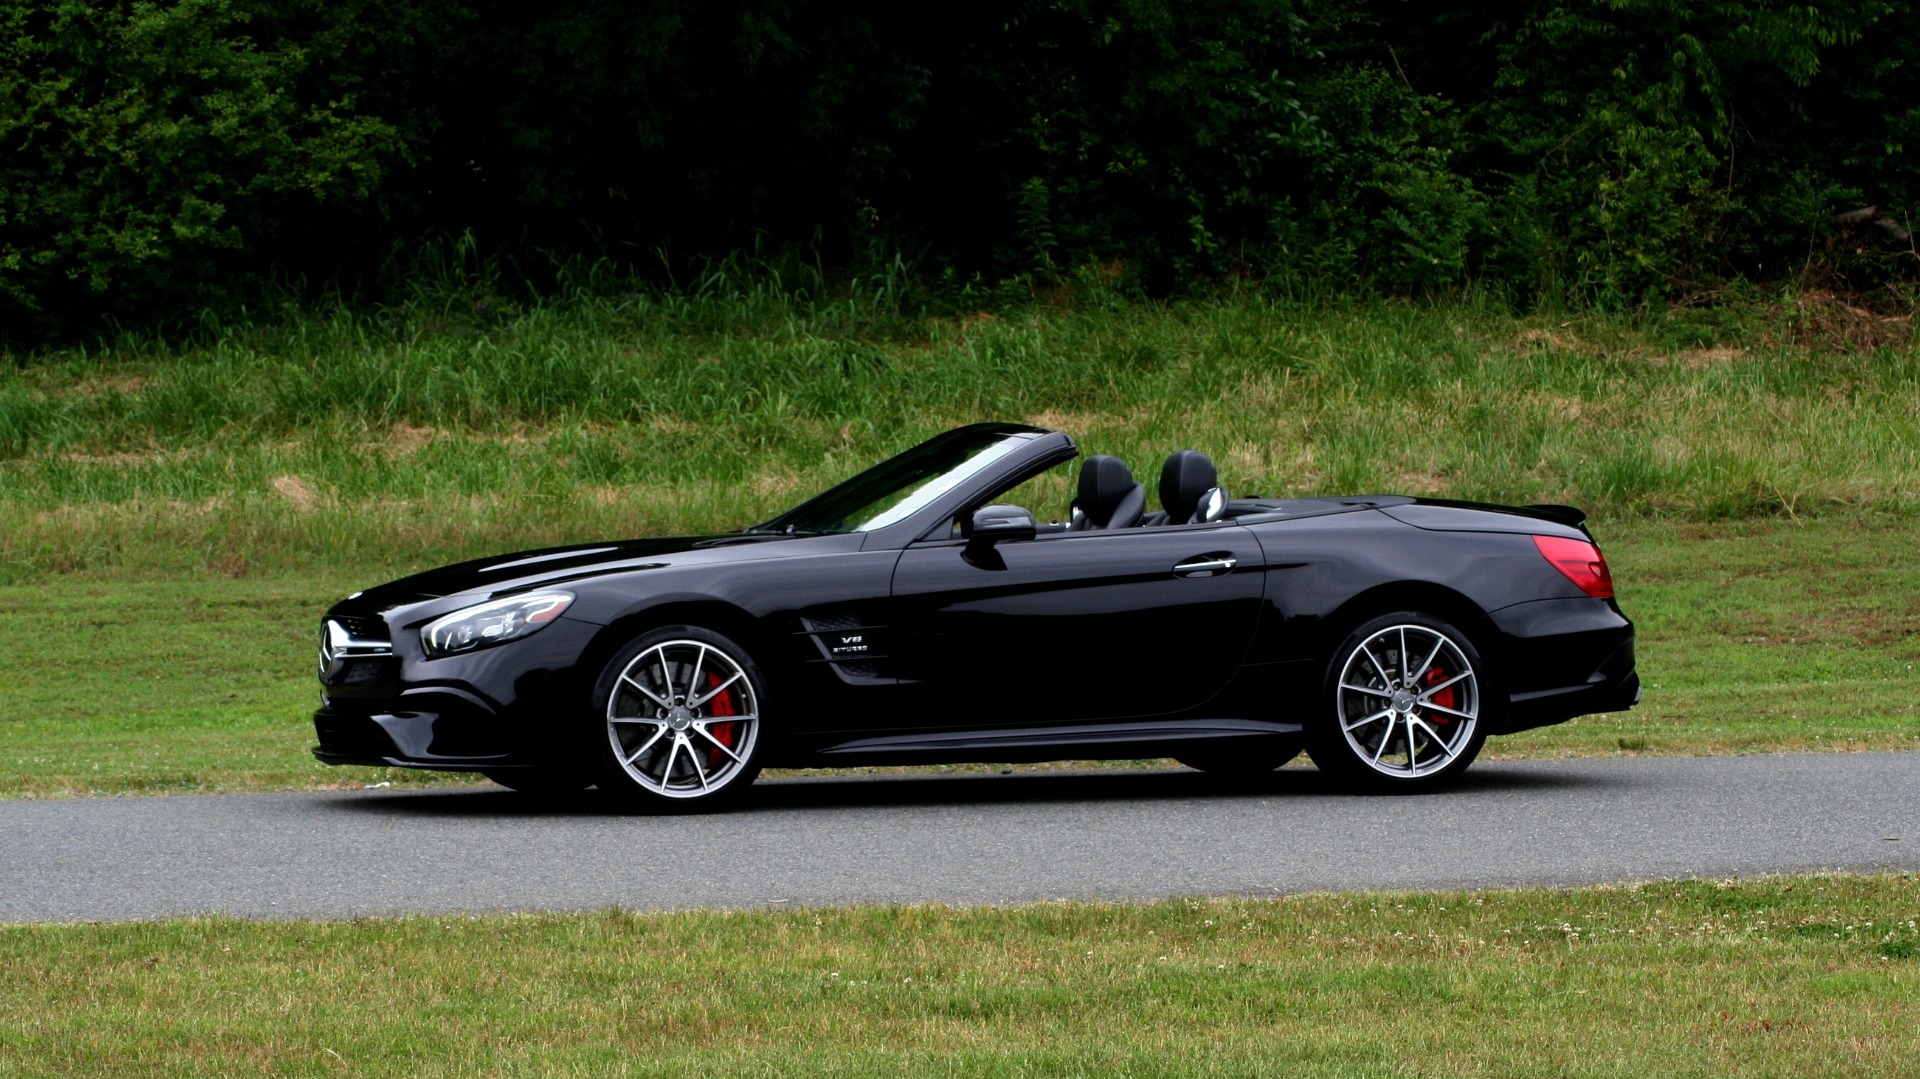 Used 2017 Mercedes-Benz SL 63 AMG / ROADSTER / DRIVER ASSIST / NAV / CAMERA for sale Sold at Formula Imports in Charlotte NC 28227 2